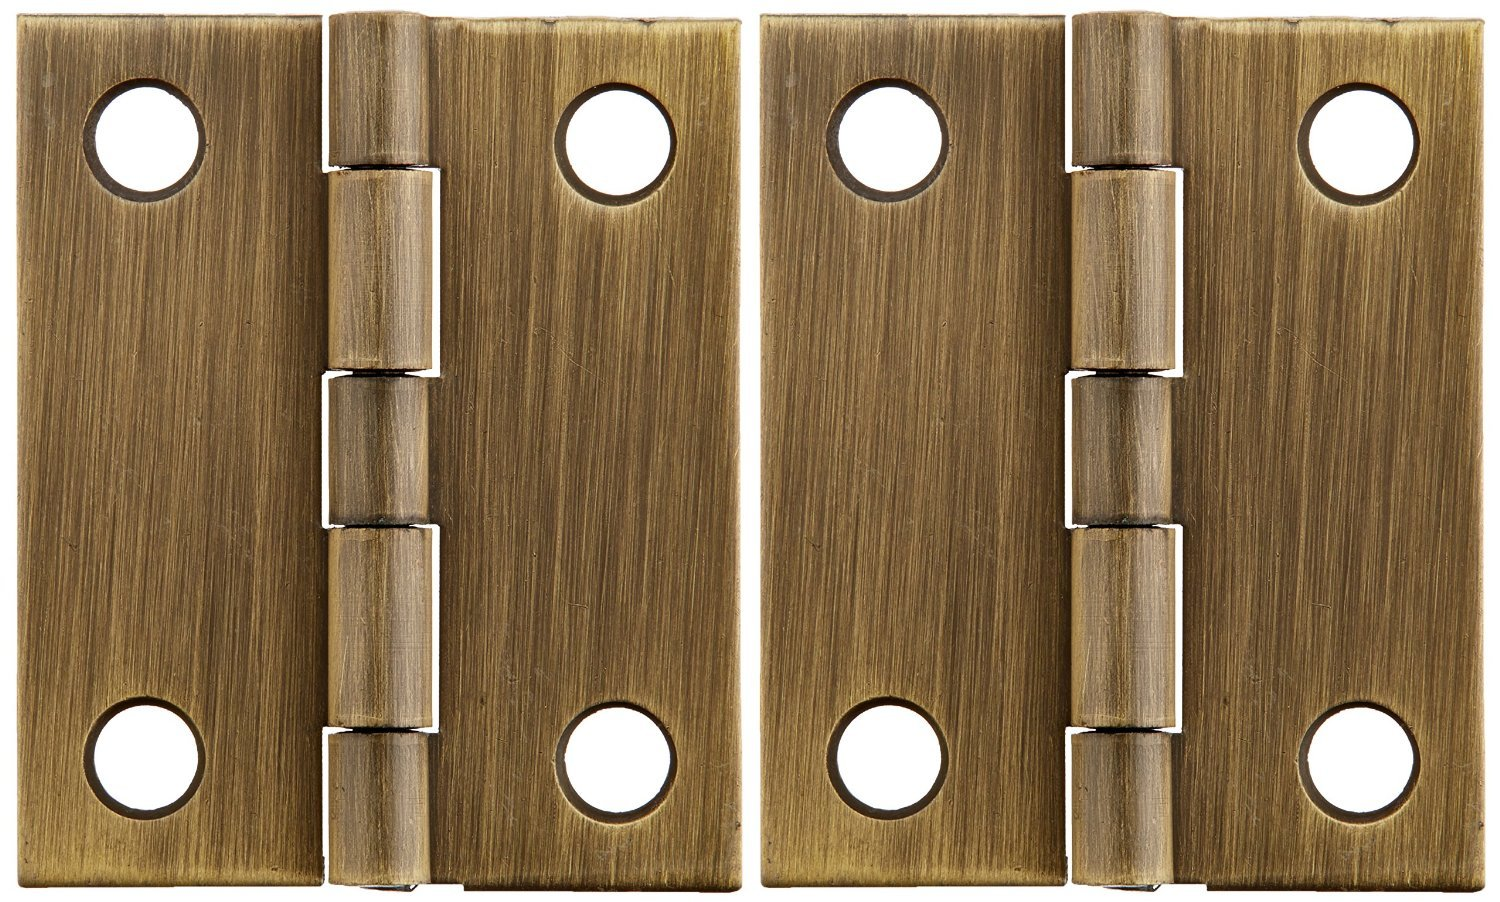 National N211-185 Antique Brass Hinge 1''x3/4'' (Pack of 5)